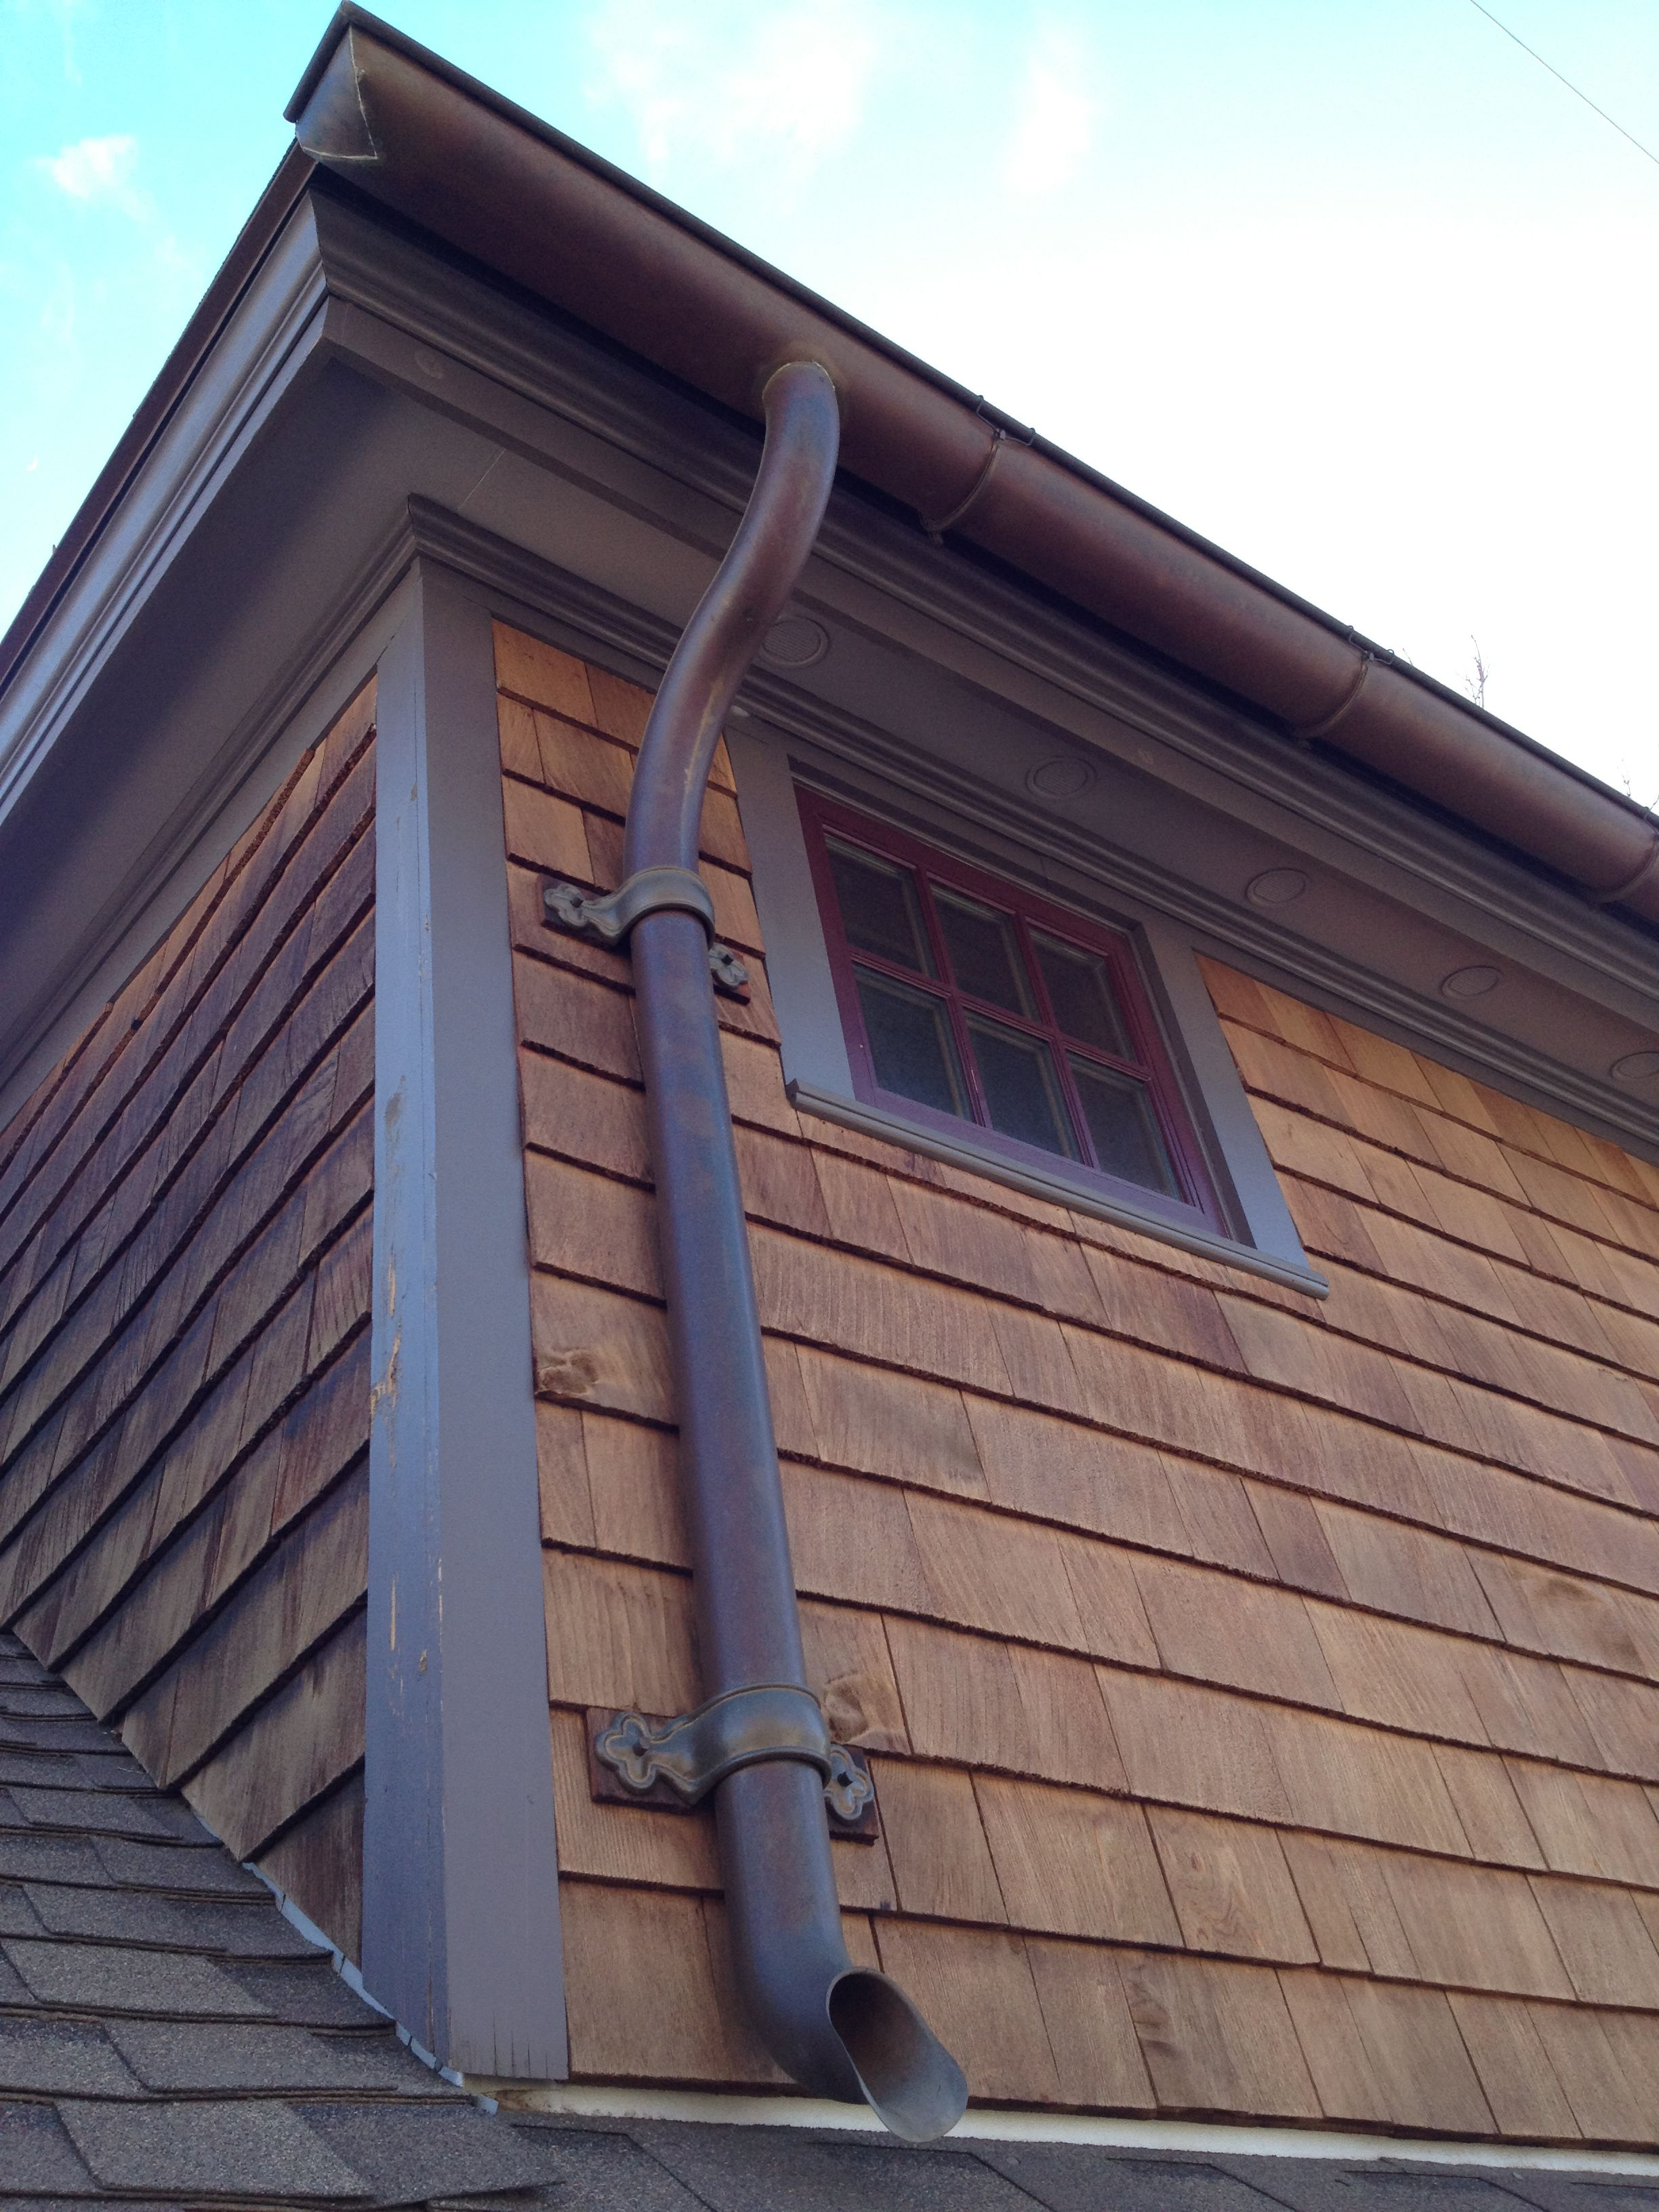 Royal Brown Half Round Gutter Google Search Siding